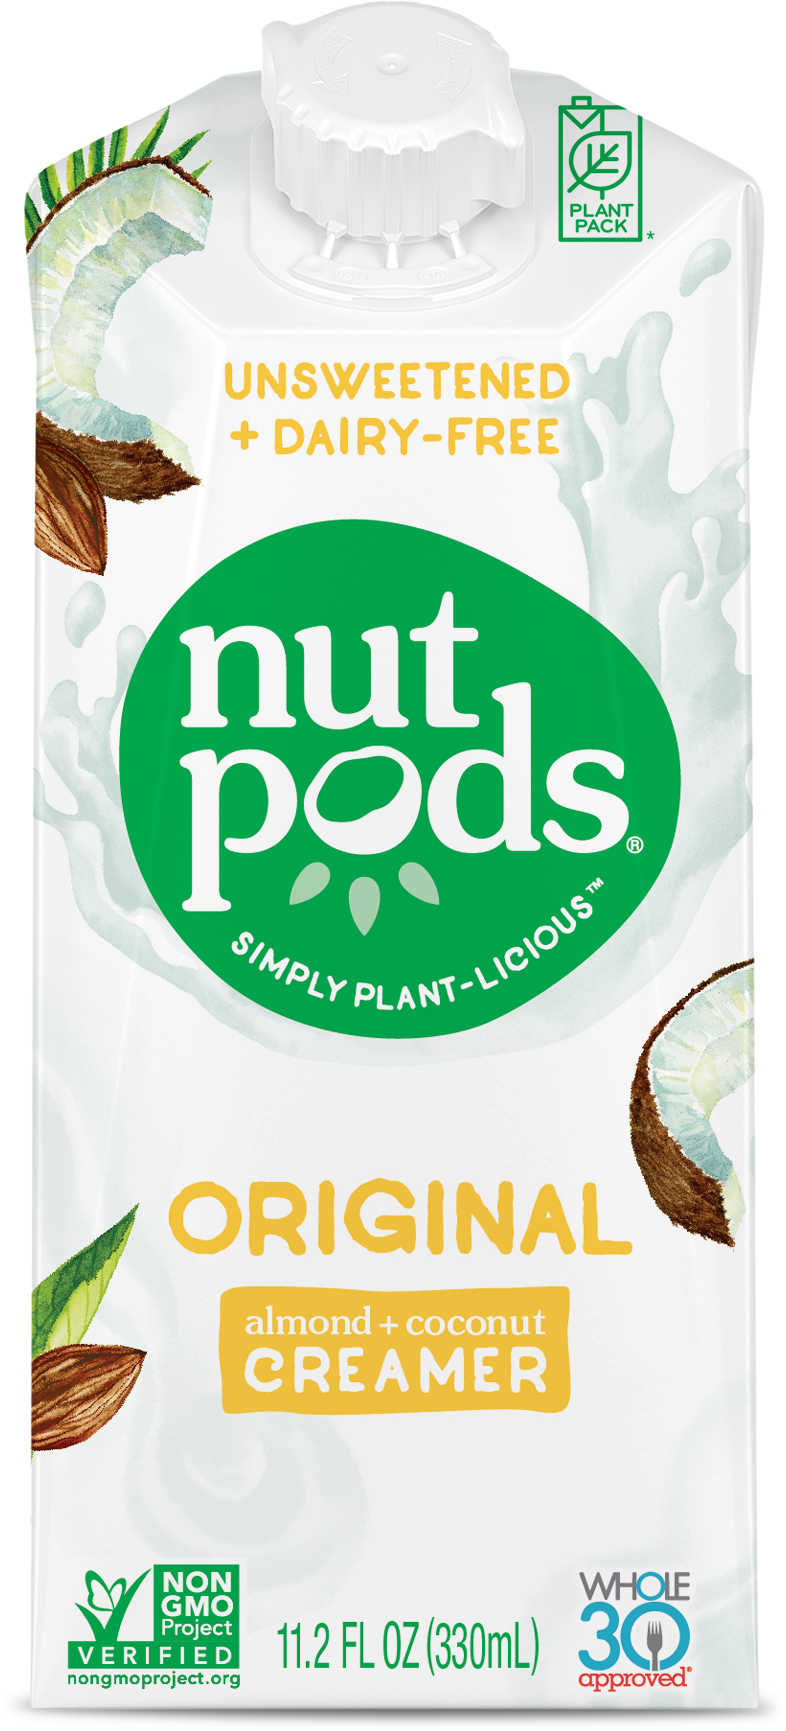 nutpods: Photo of Original (2016) - nutpods (uploaded by company)